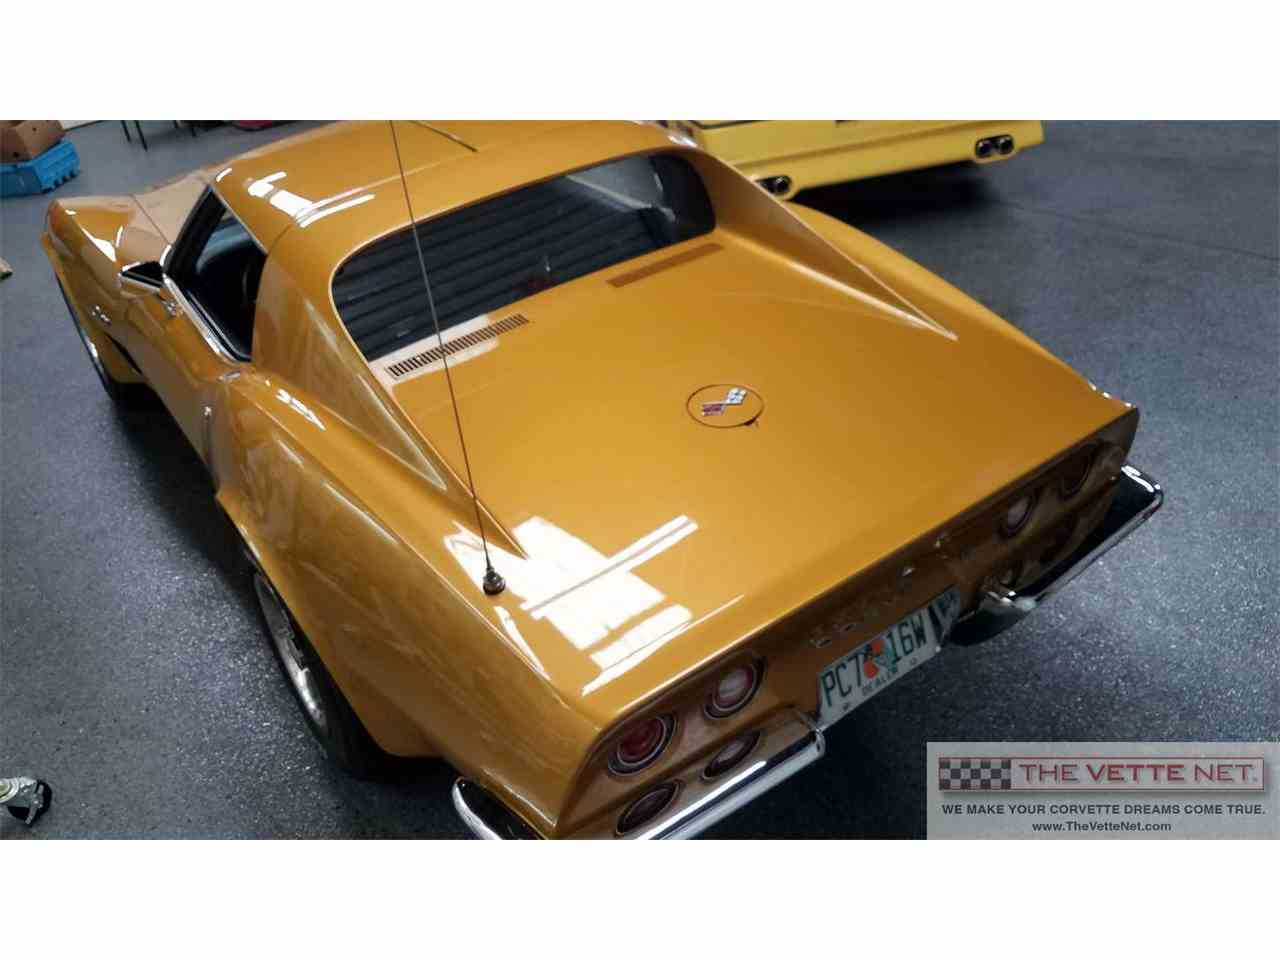 Picture of 1973 chevrolet corvette coupe exterior - Photo 8